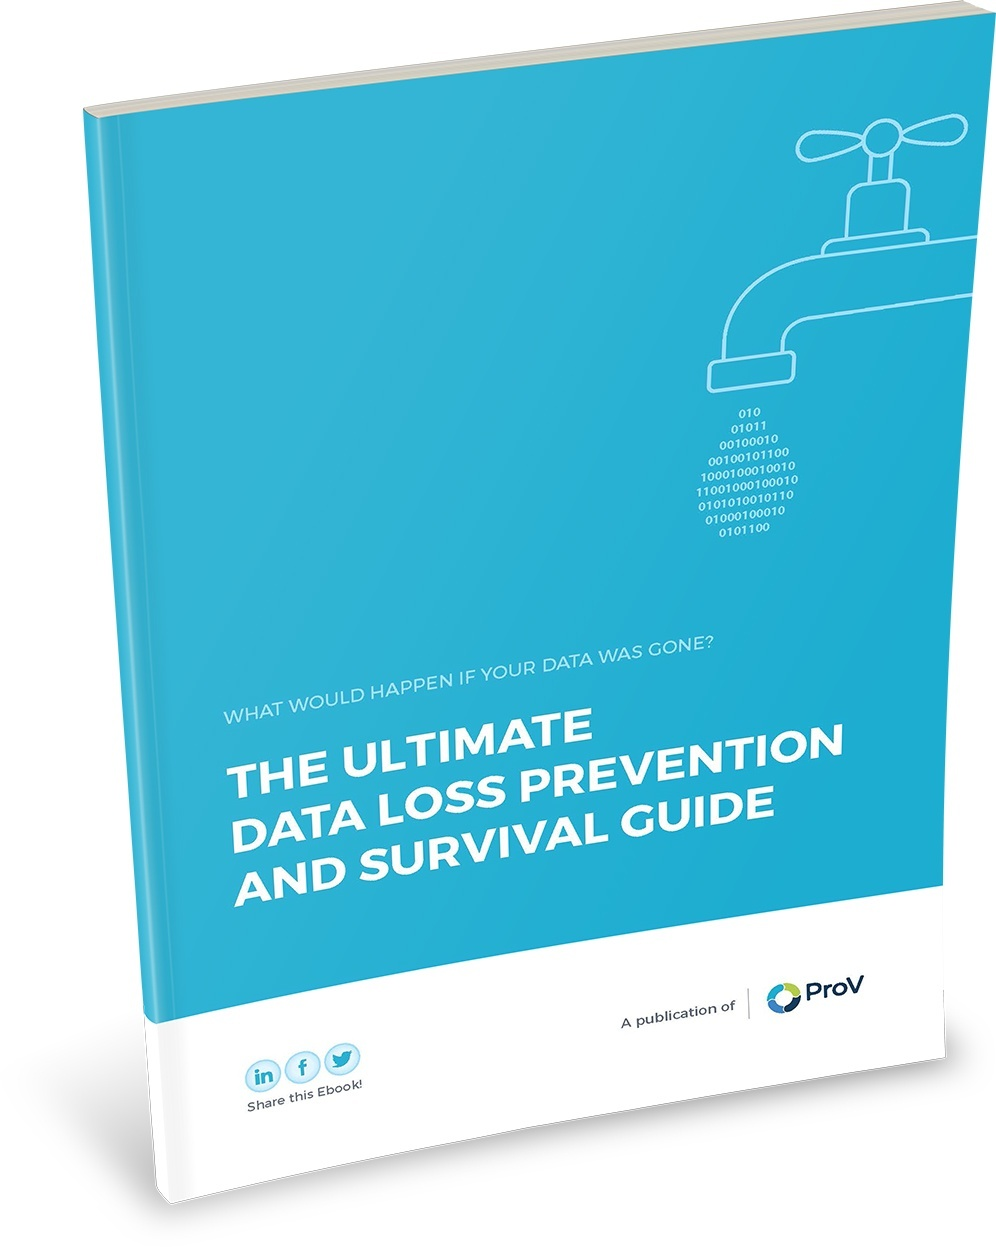 The Ultimate Data Loss Prevention and Survival Guide